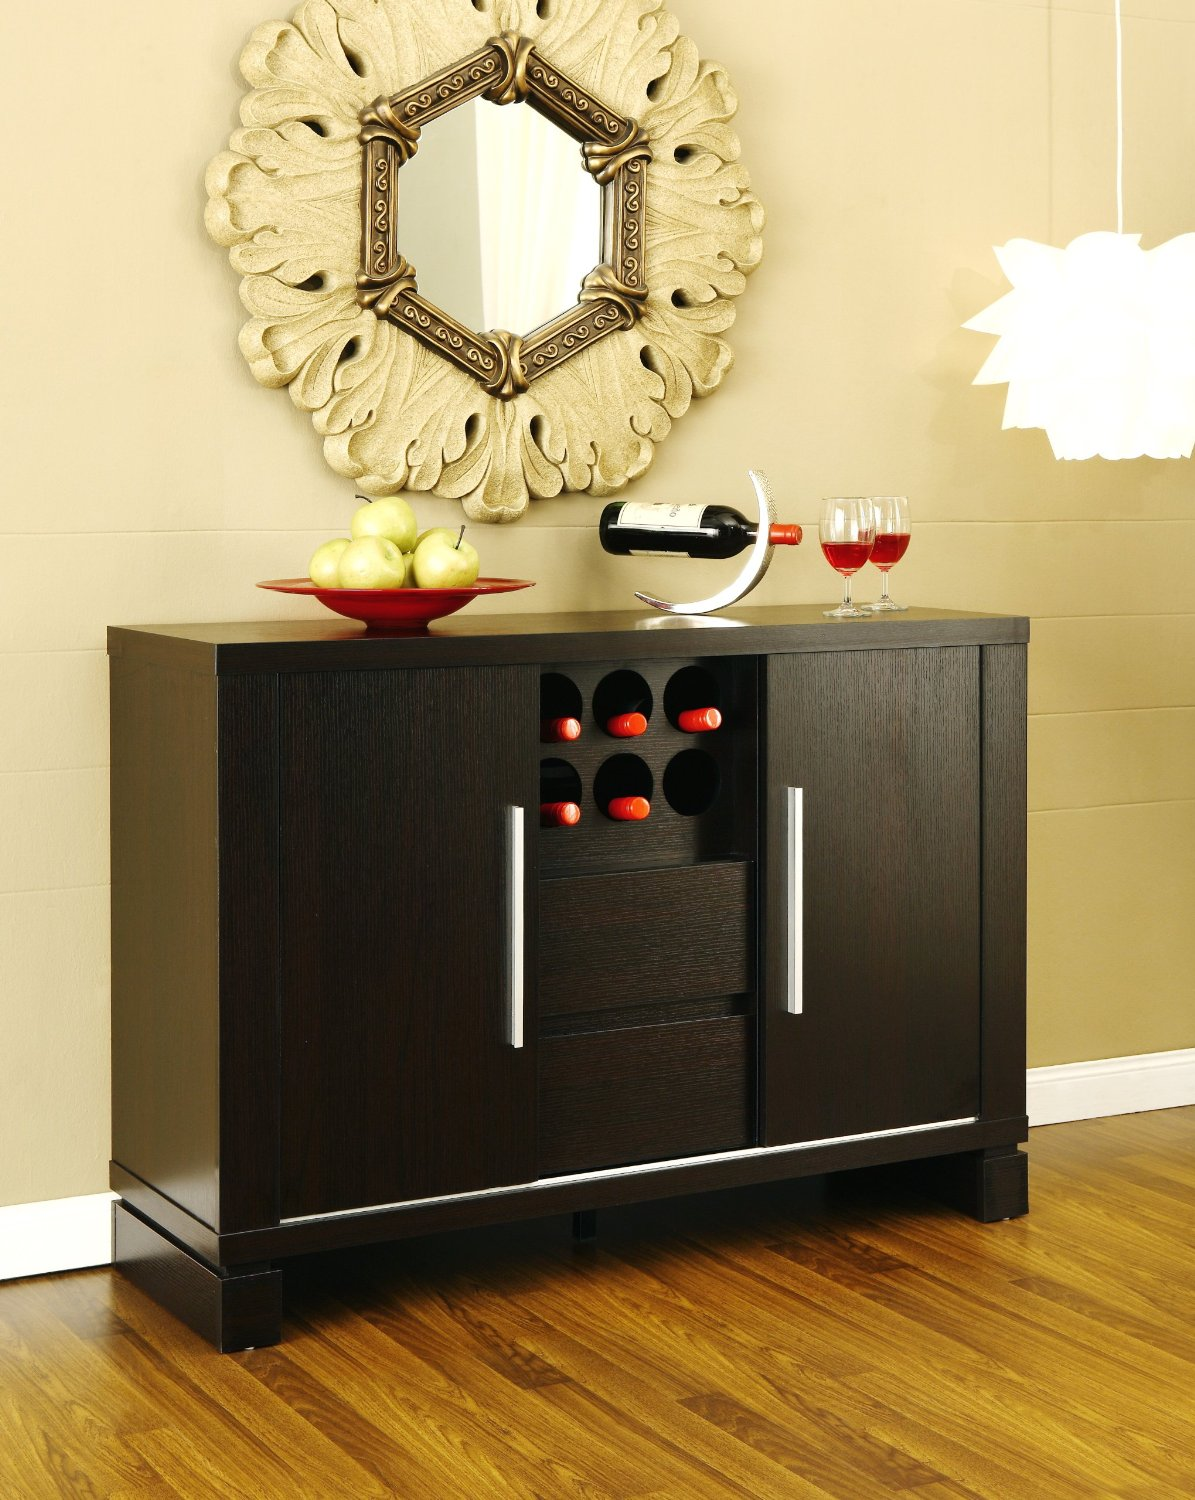 Dining Room Storage Cabinets - HomesFeed